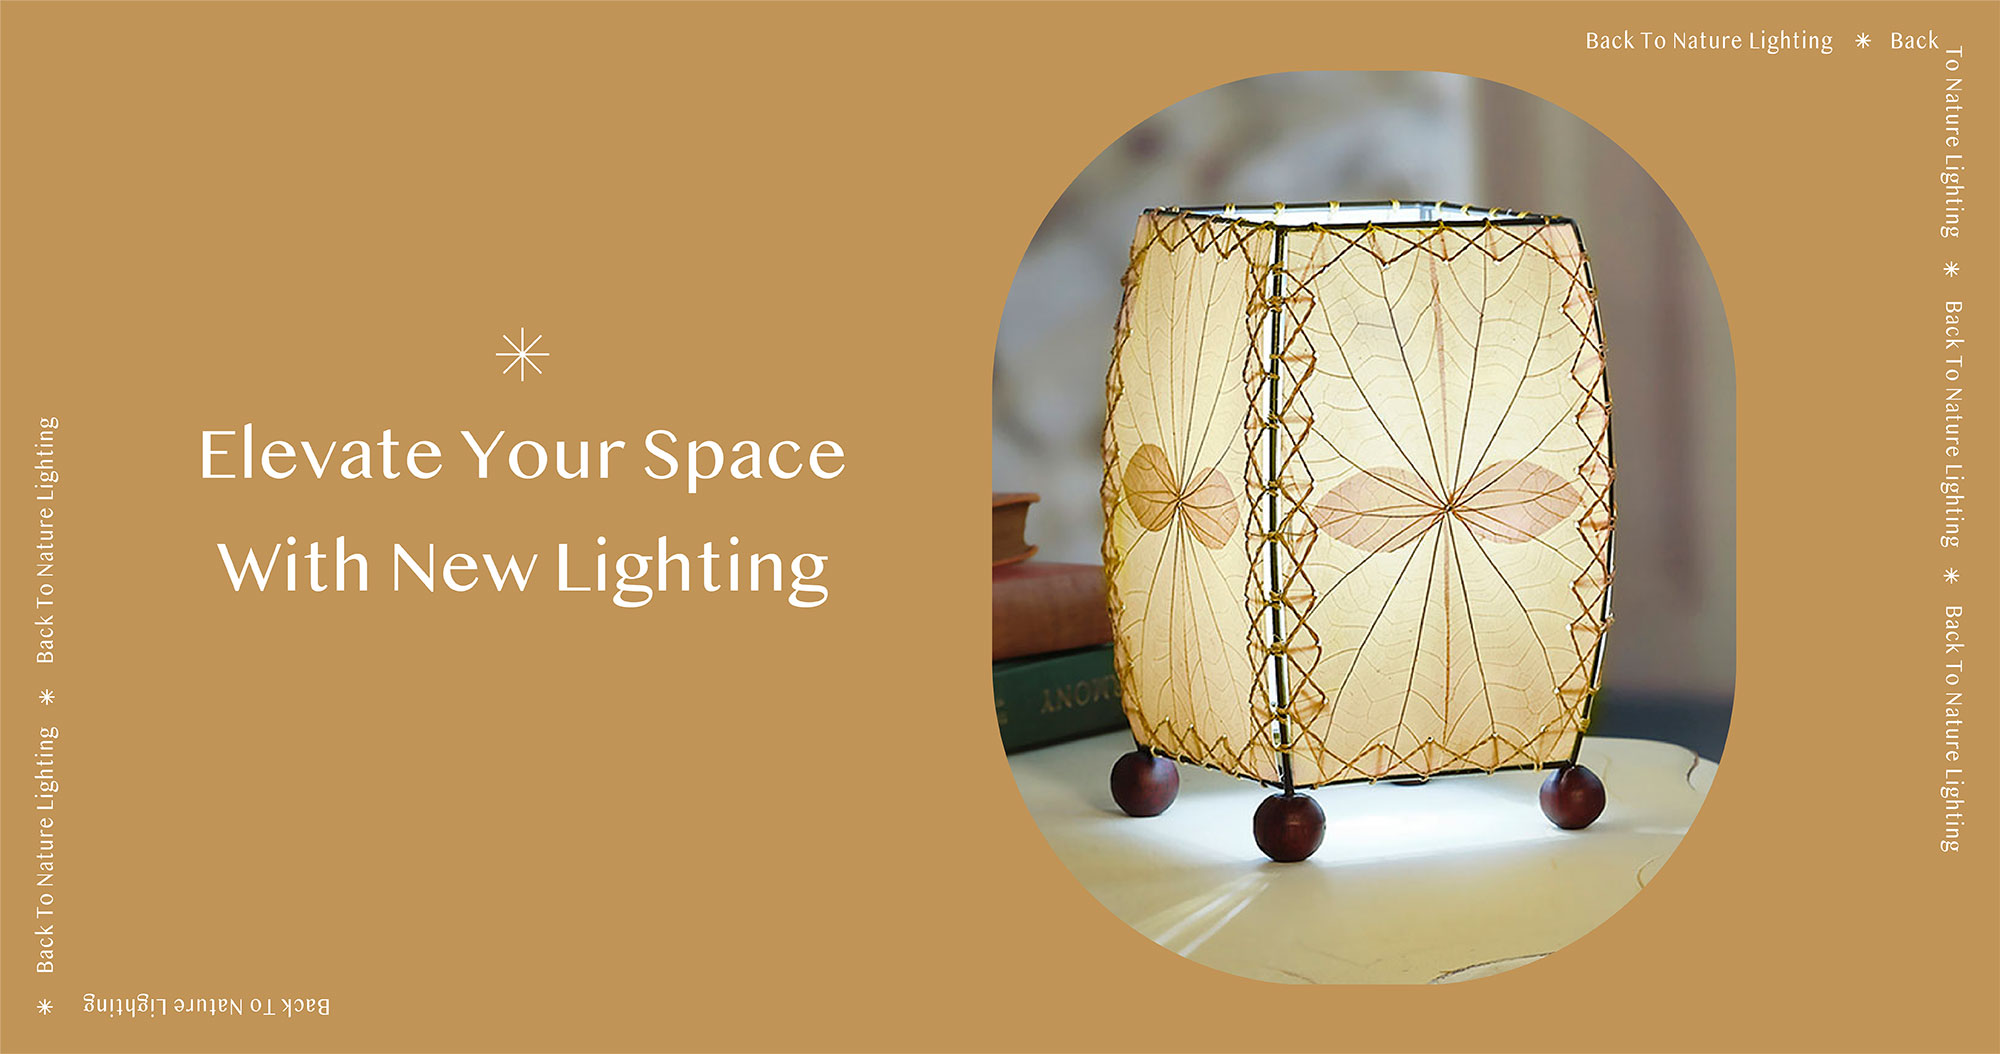 Elevate Your Space With New Lighting